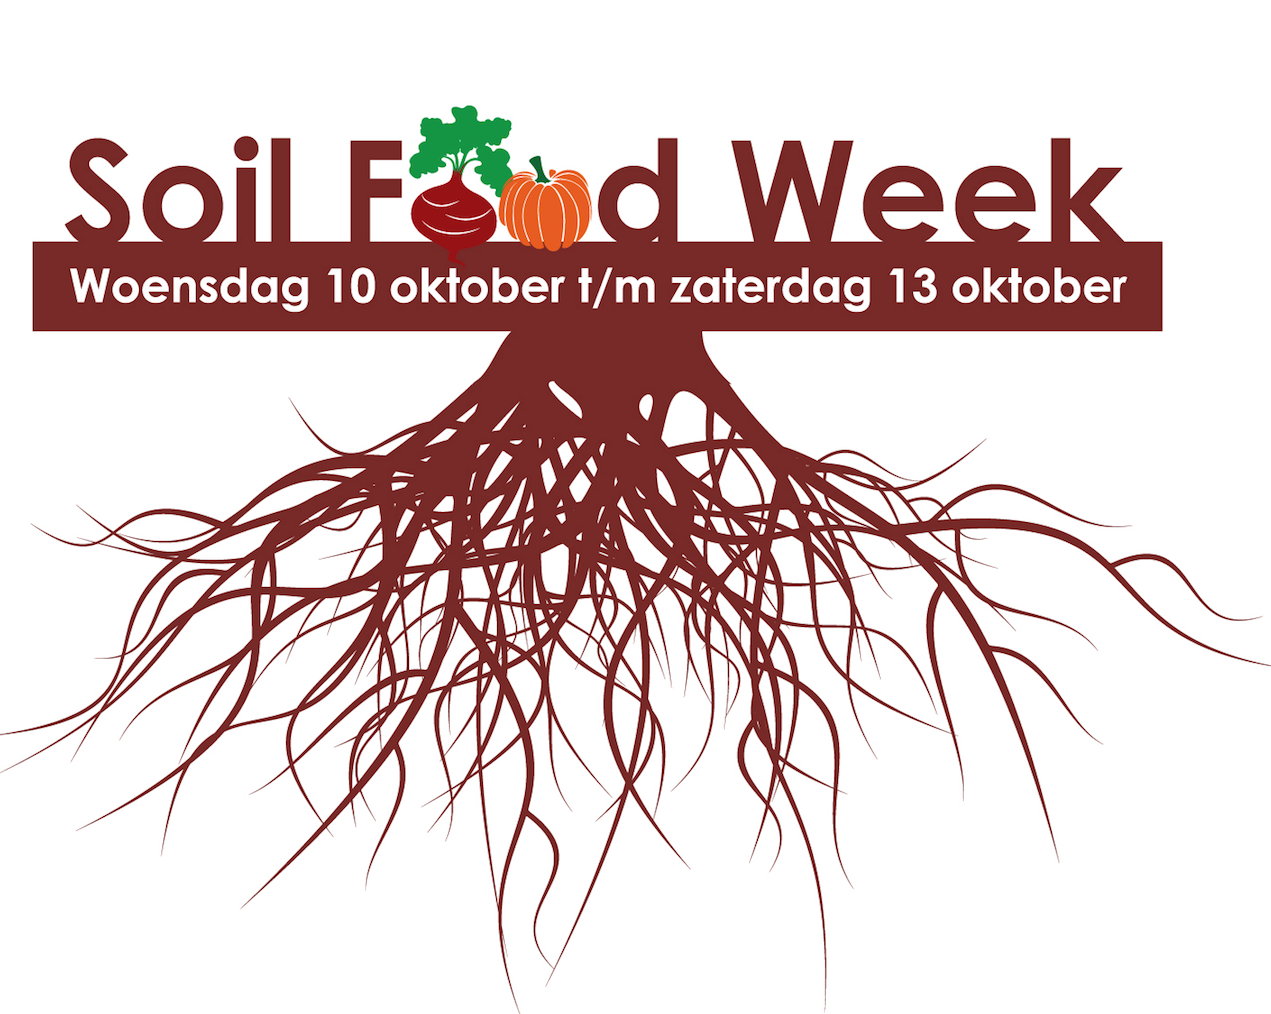 Soil Food Week